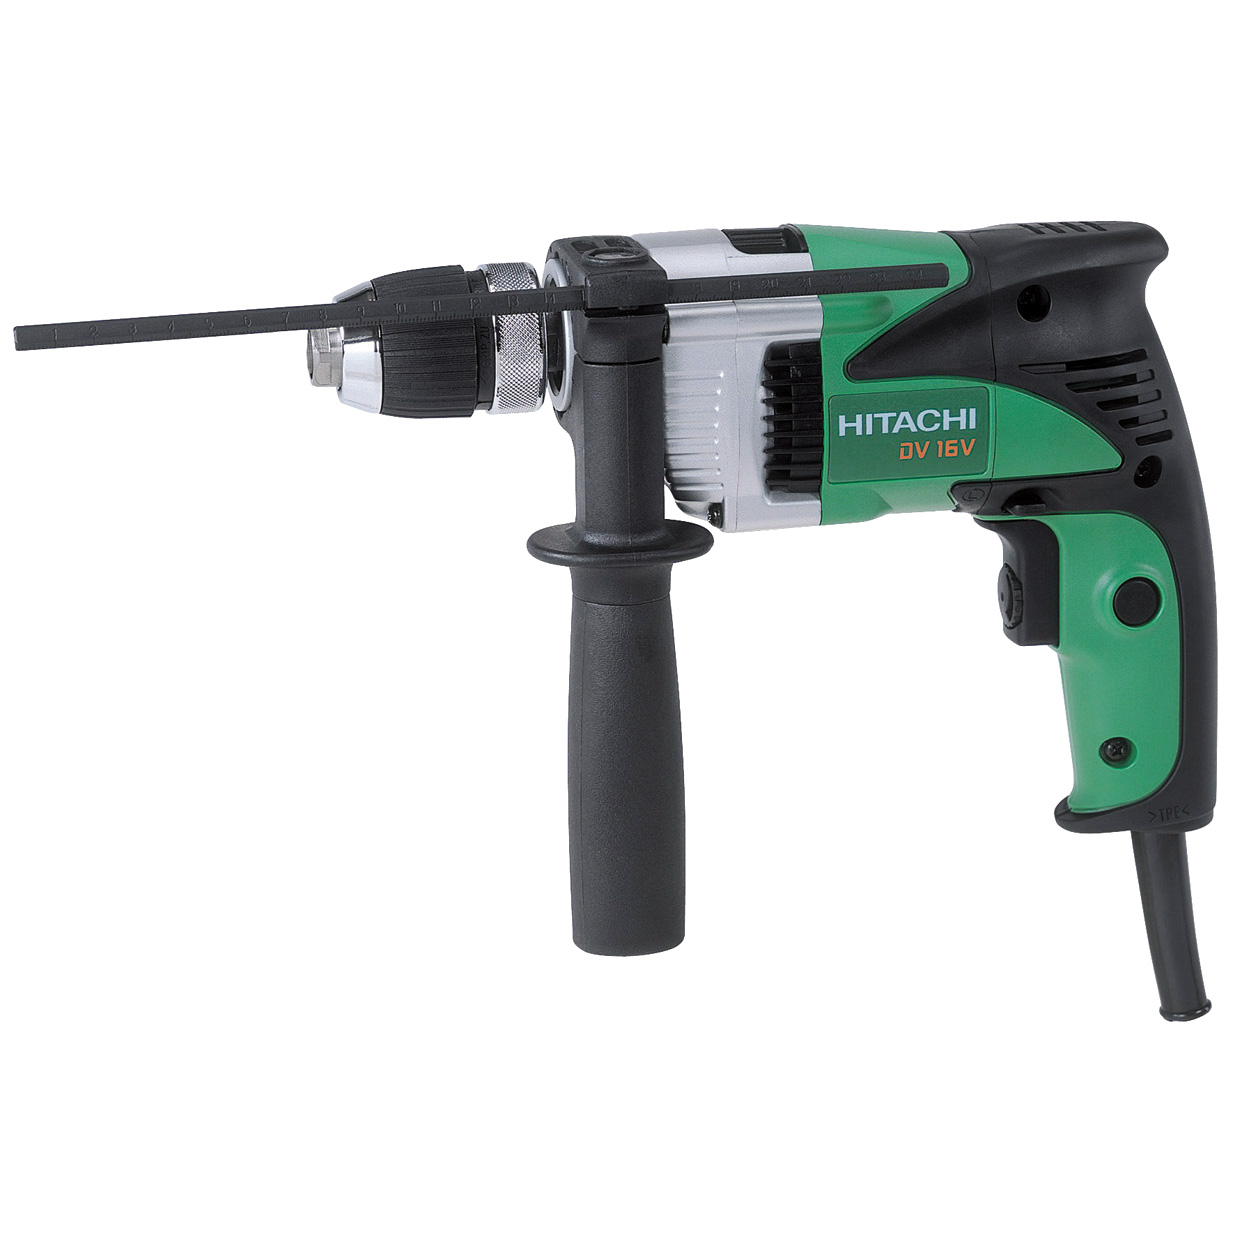 "Hitachi DV16V 5 8"" 6 Amp 2-Mode VSR Hammer Drill by Hitachi Power Tools"